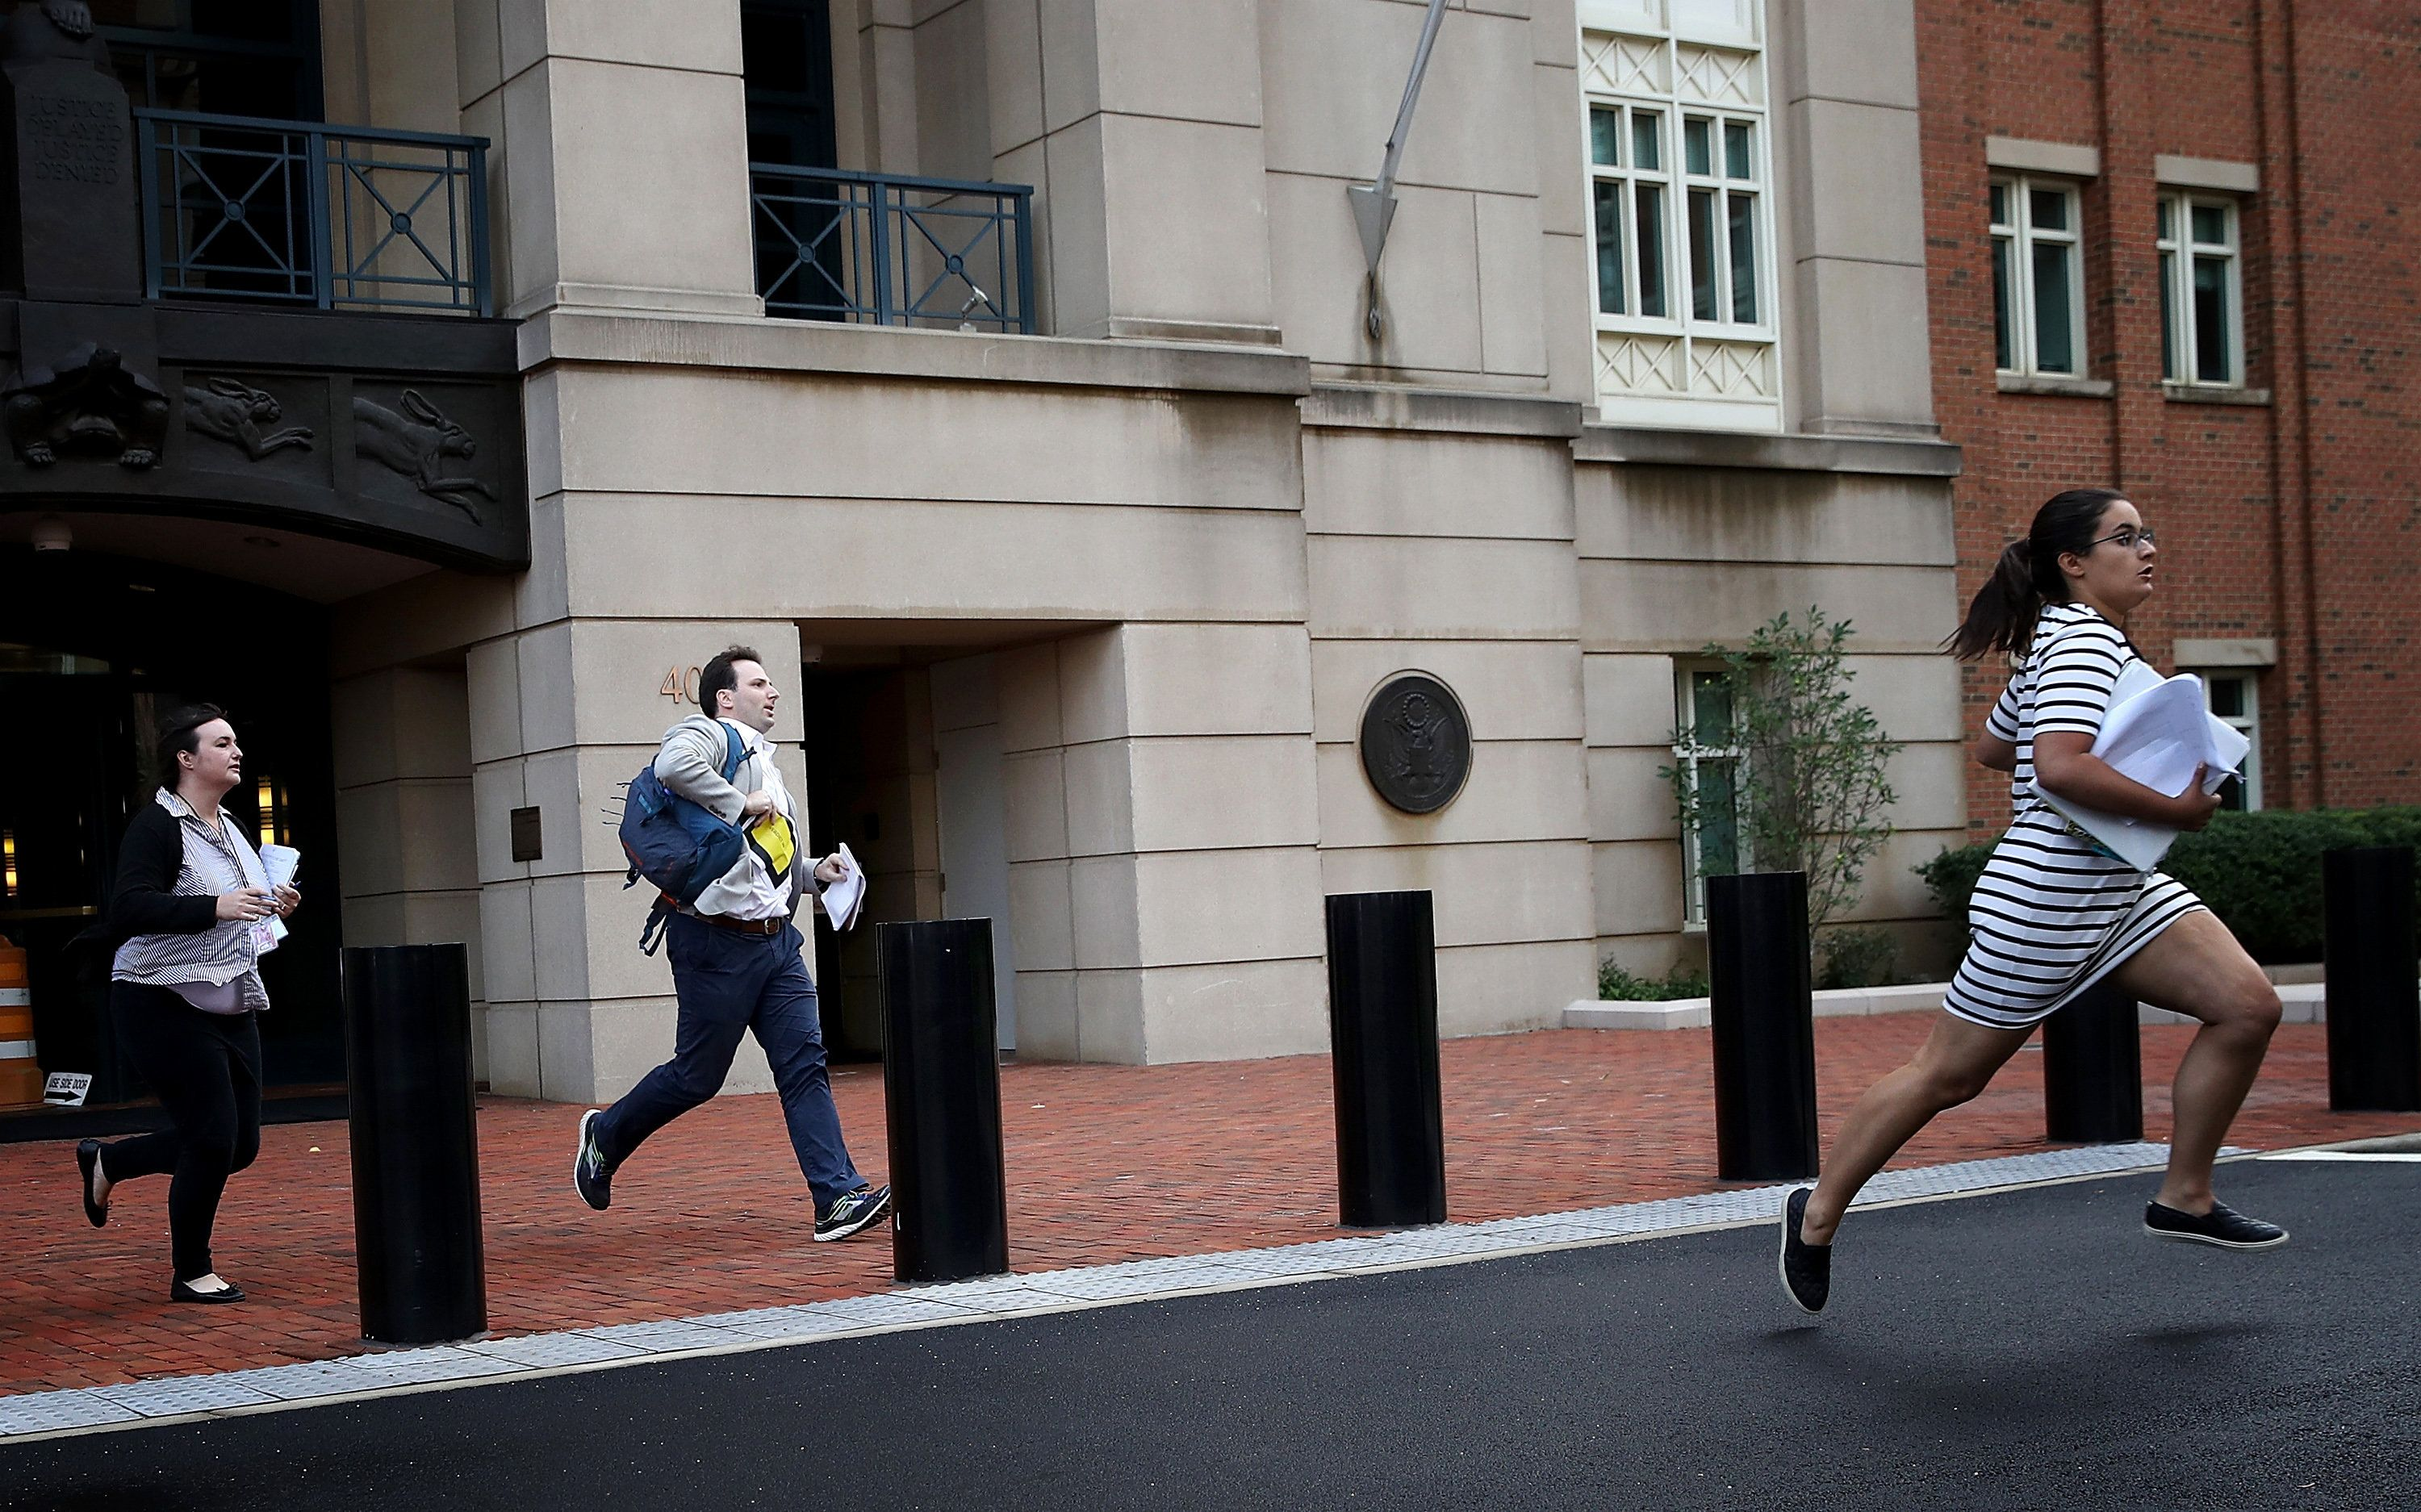 ALEXANDRIA, VA - AUGUST 21:  Reporters run from the Albert V. Bryan United States Courthouse with news of the verdict in the case of former Trump campaign chairman Paul Manafort August 21, 2018 in Alexandria, Virginia. Manafort was found guilty on 8 out of 18 counts of bank and tax fraud as part of special counsel Robert Mueller's investigation into Russian interference in the 2016 presidential election. (Photo by Win McNamee/Getty Images)